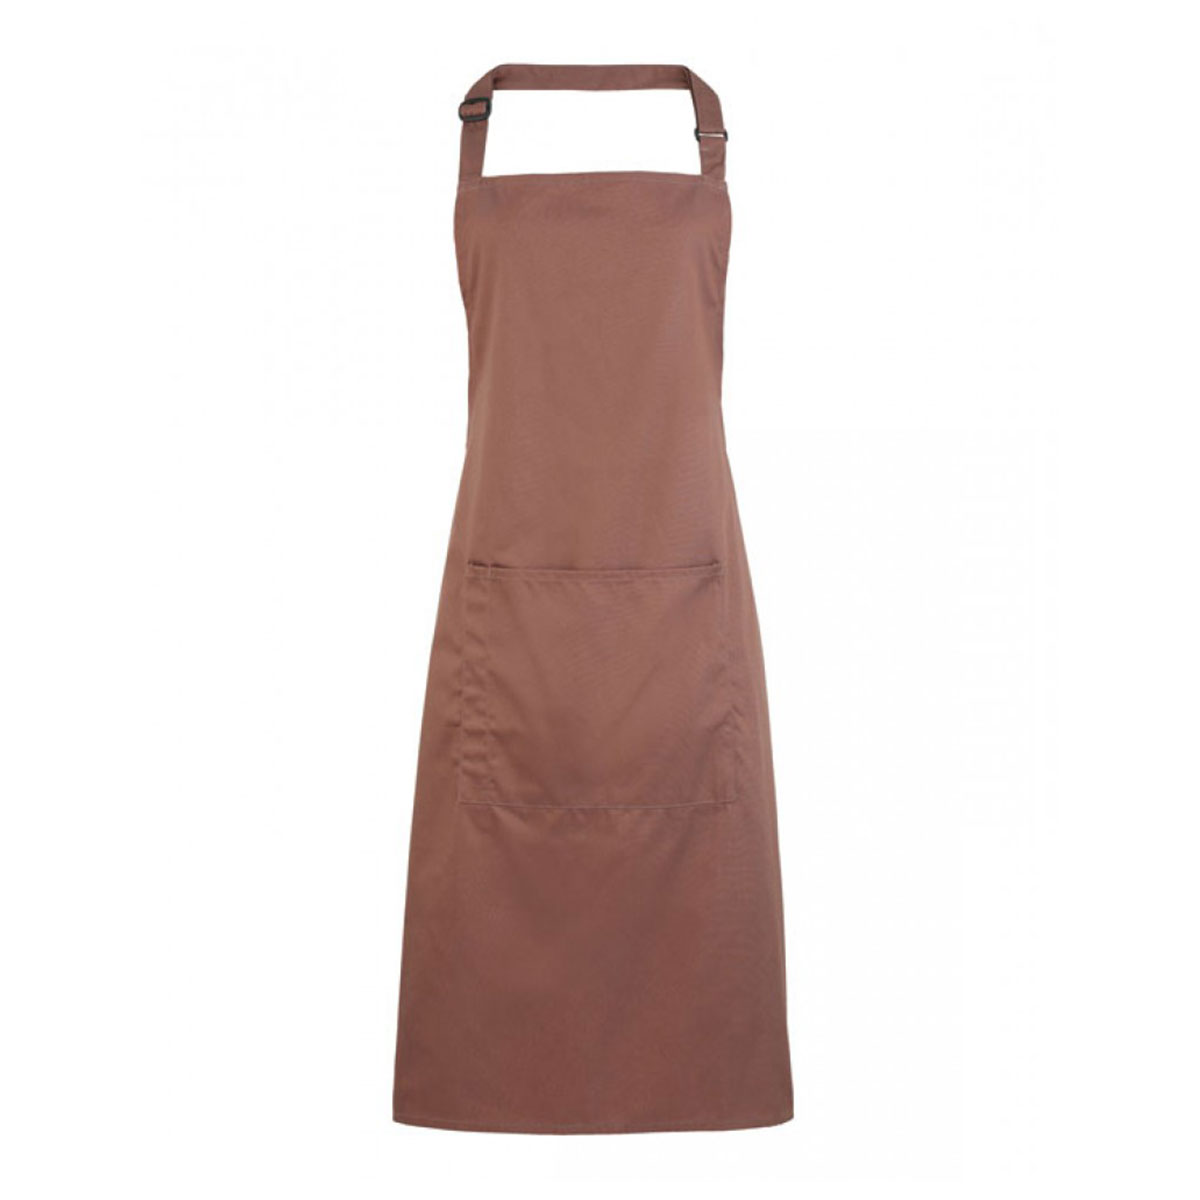 Colours Bib Apron with Pocket - pr154-mocha